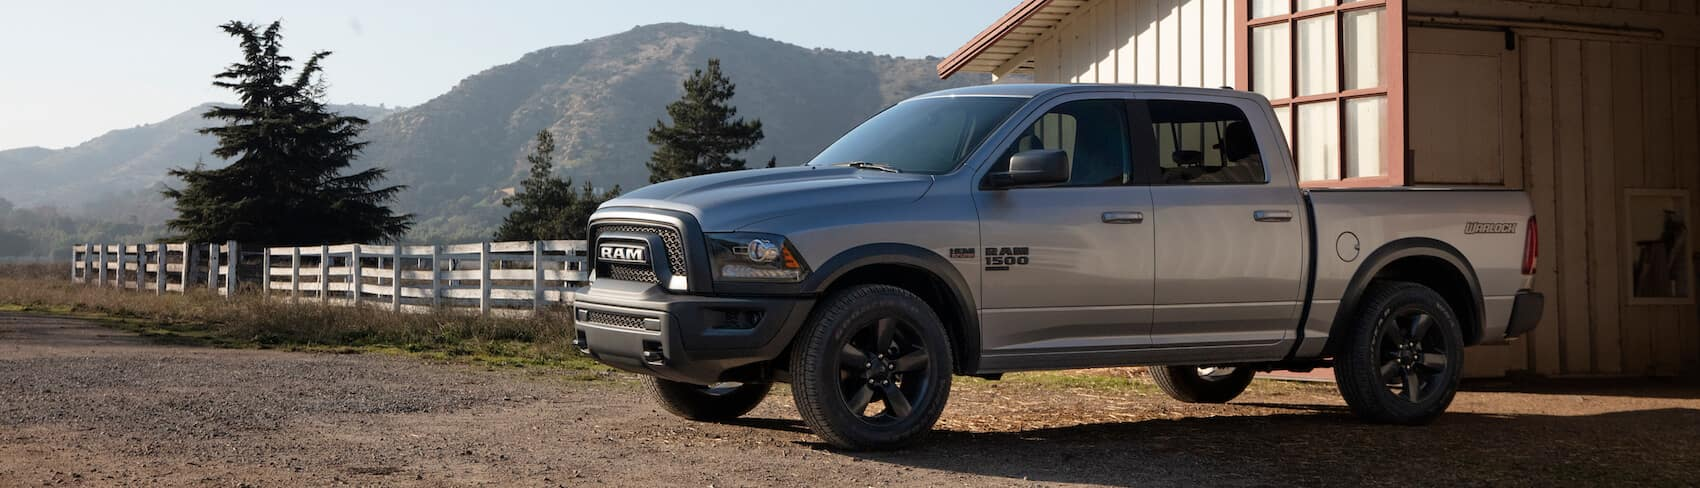 Ram 1500 vs Ford F-150 Worcester, MA